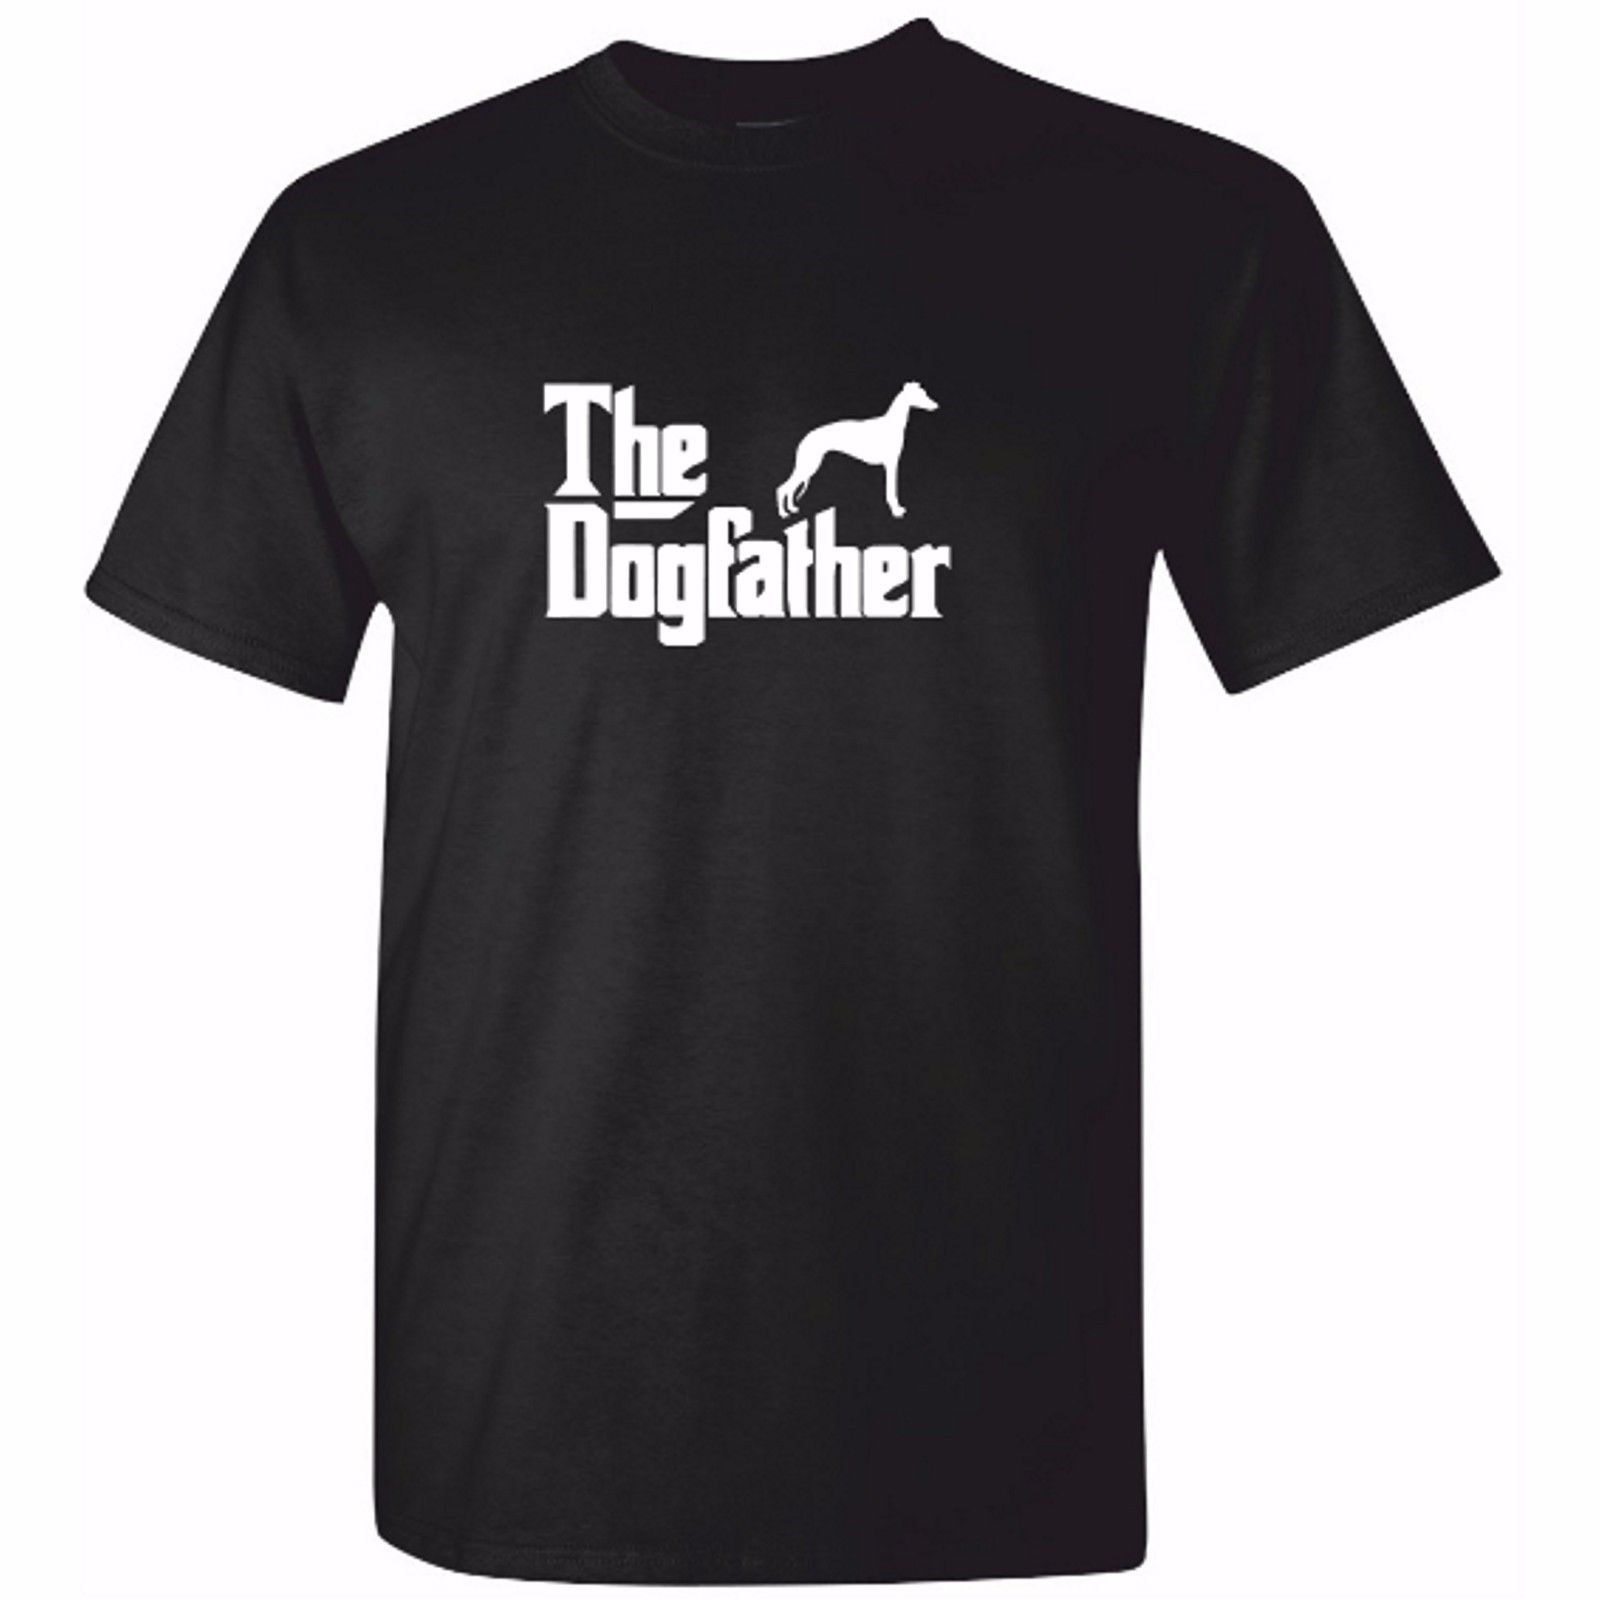 Mens Whippet / Greyhound TShirt - DOG FATHER T Shirt Clothing Present Gift